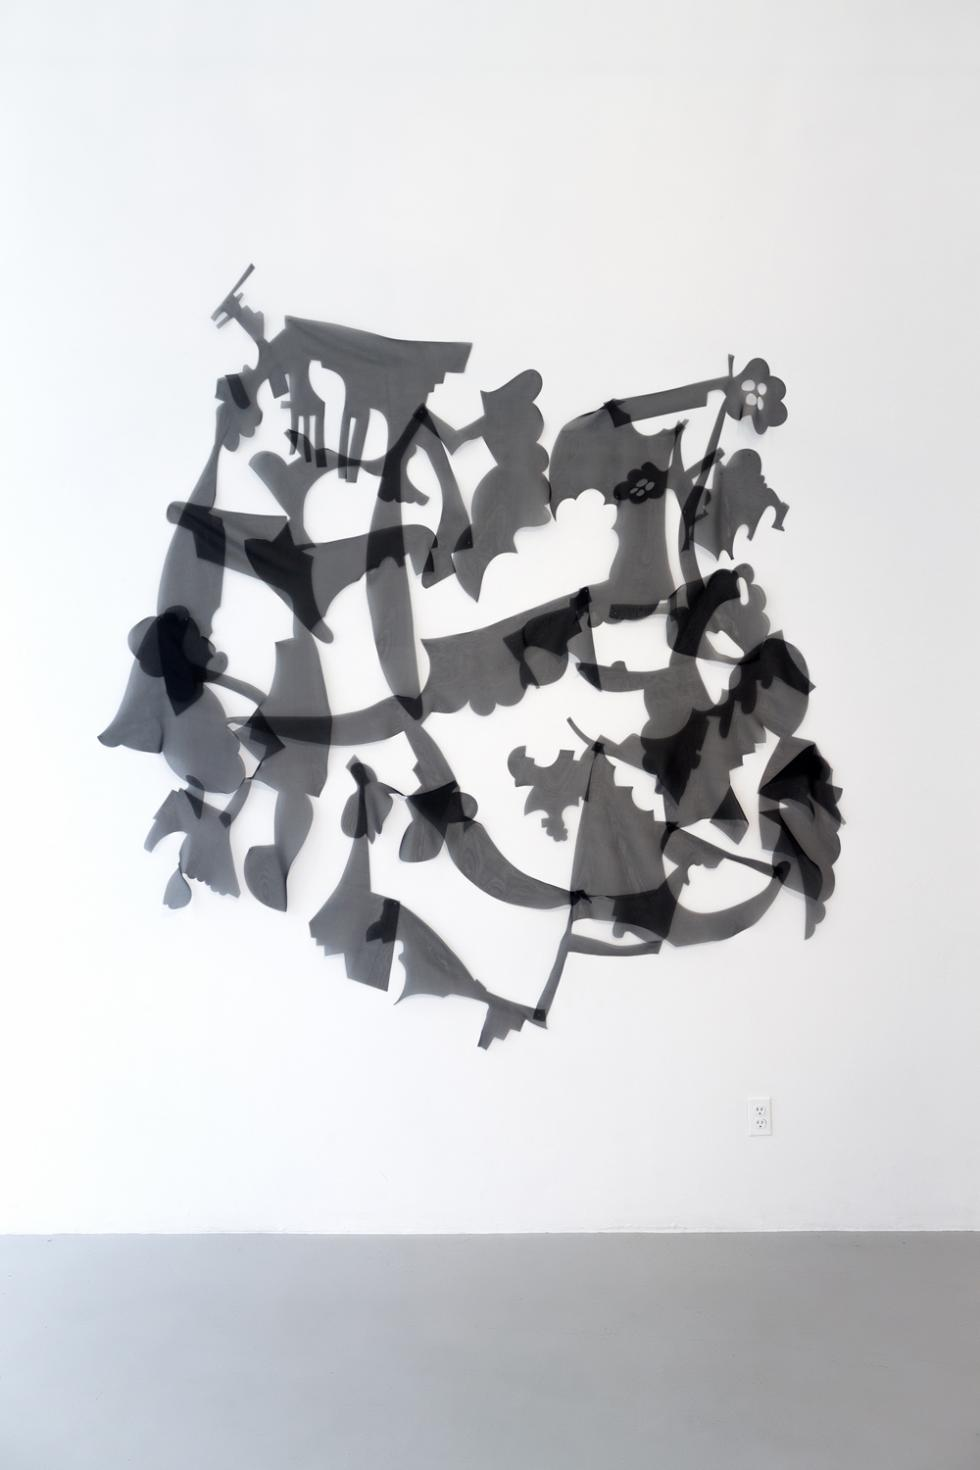 black transparent abstract shapes against a white wall